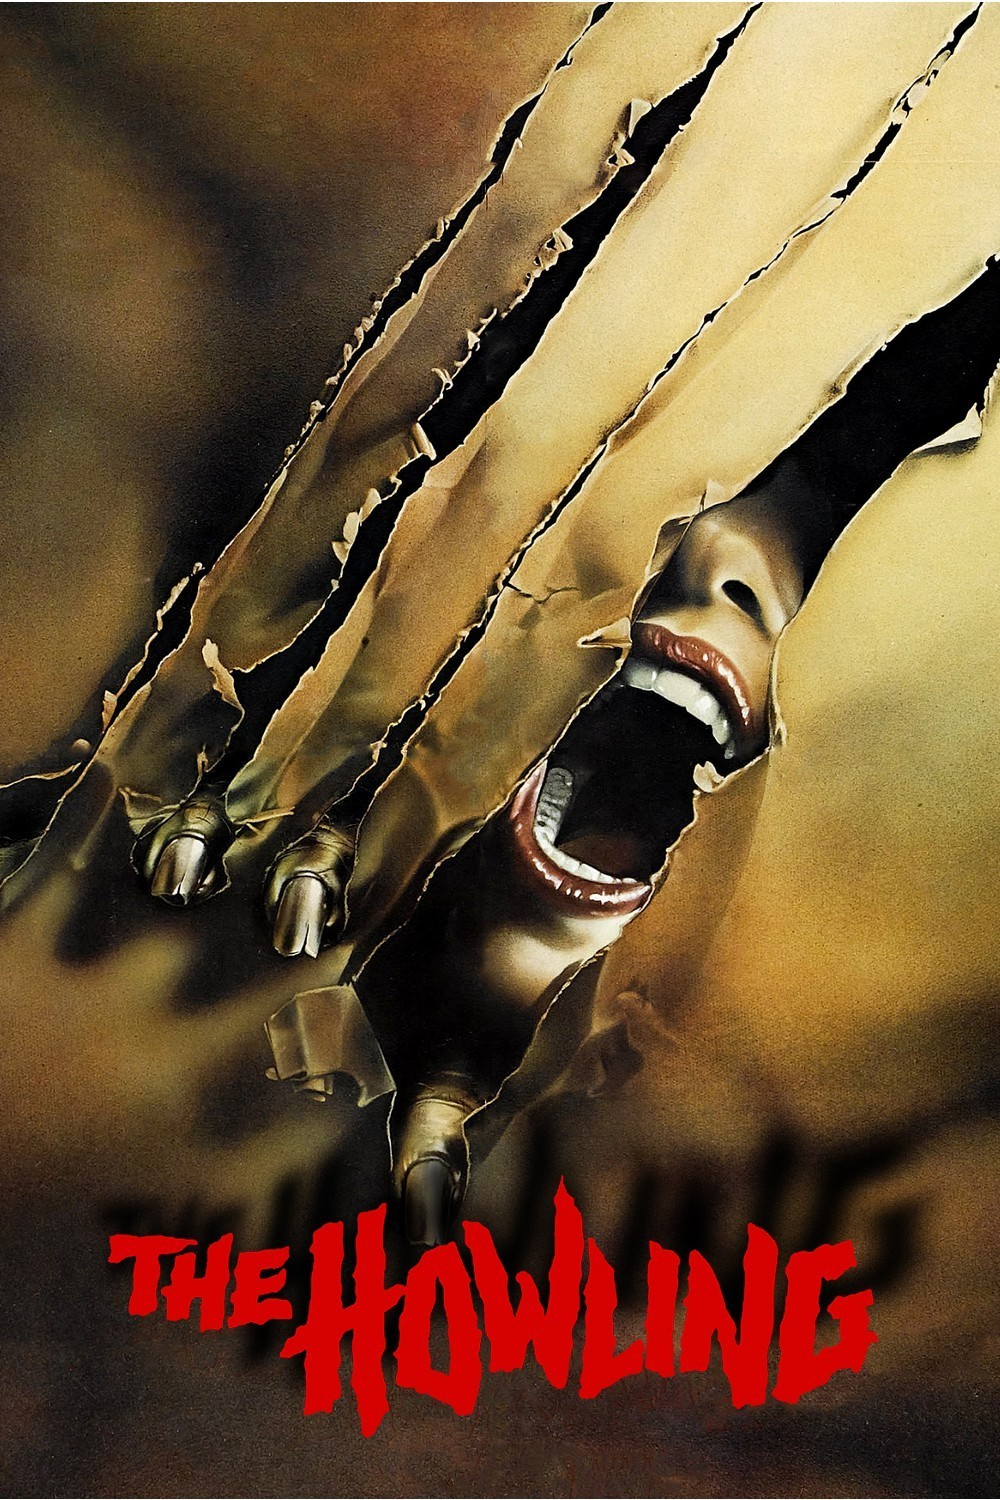 The Howling (1981) full movie streaming